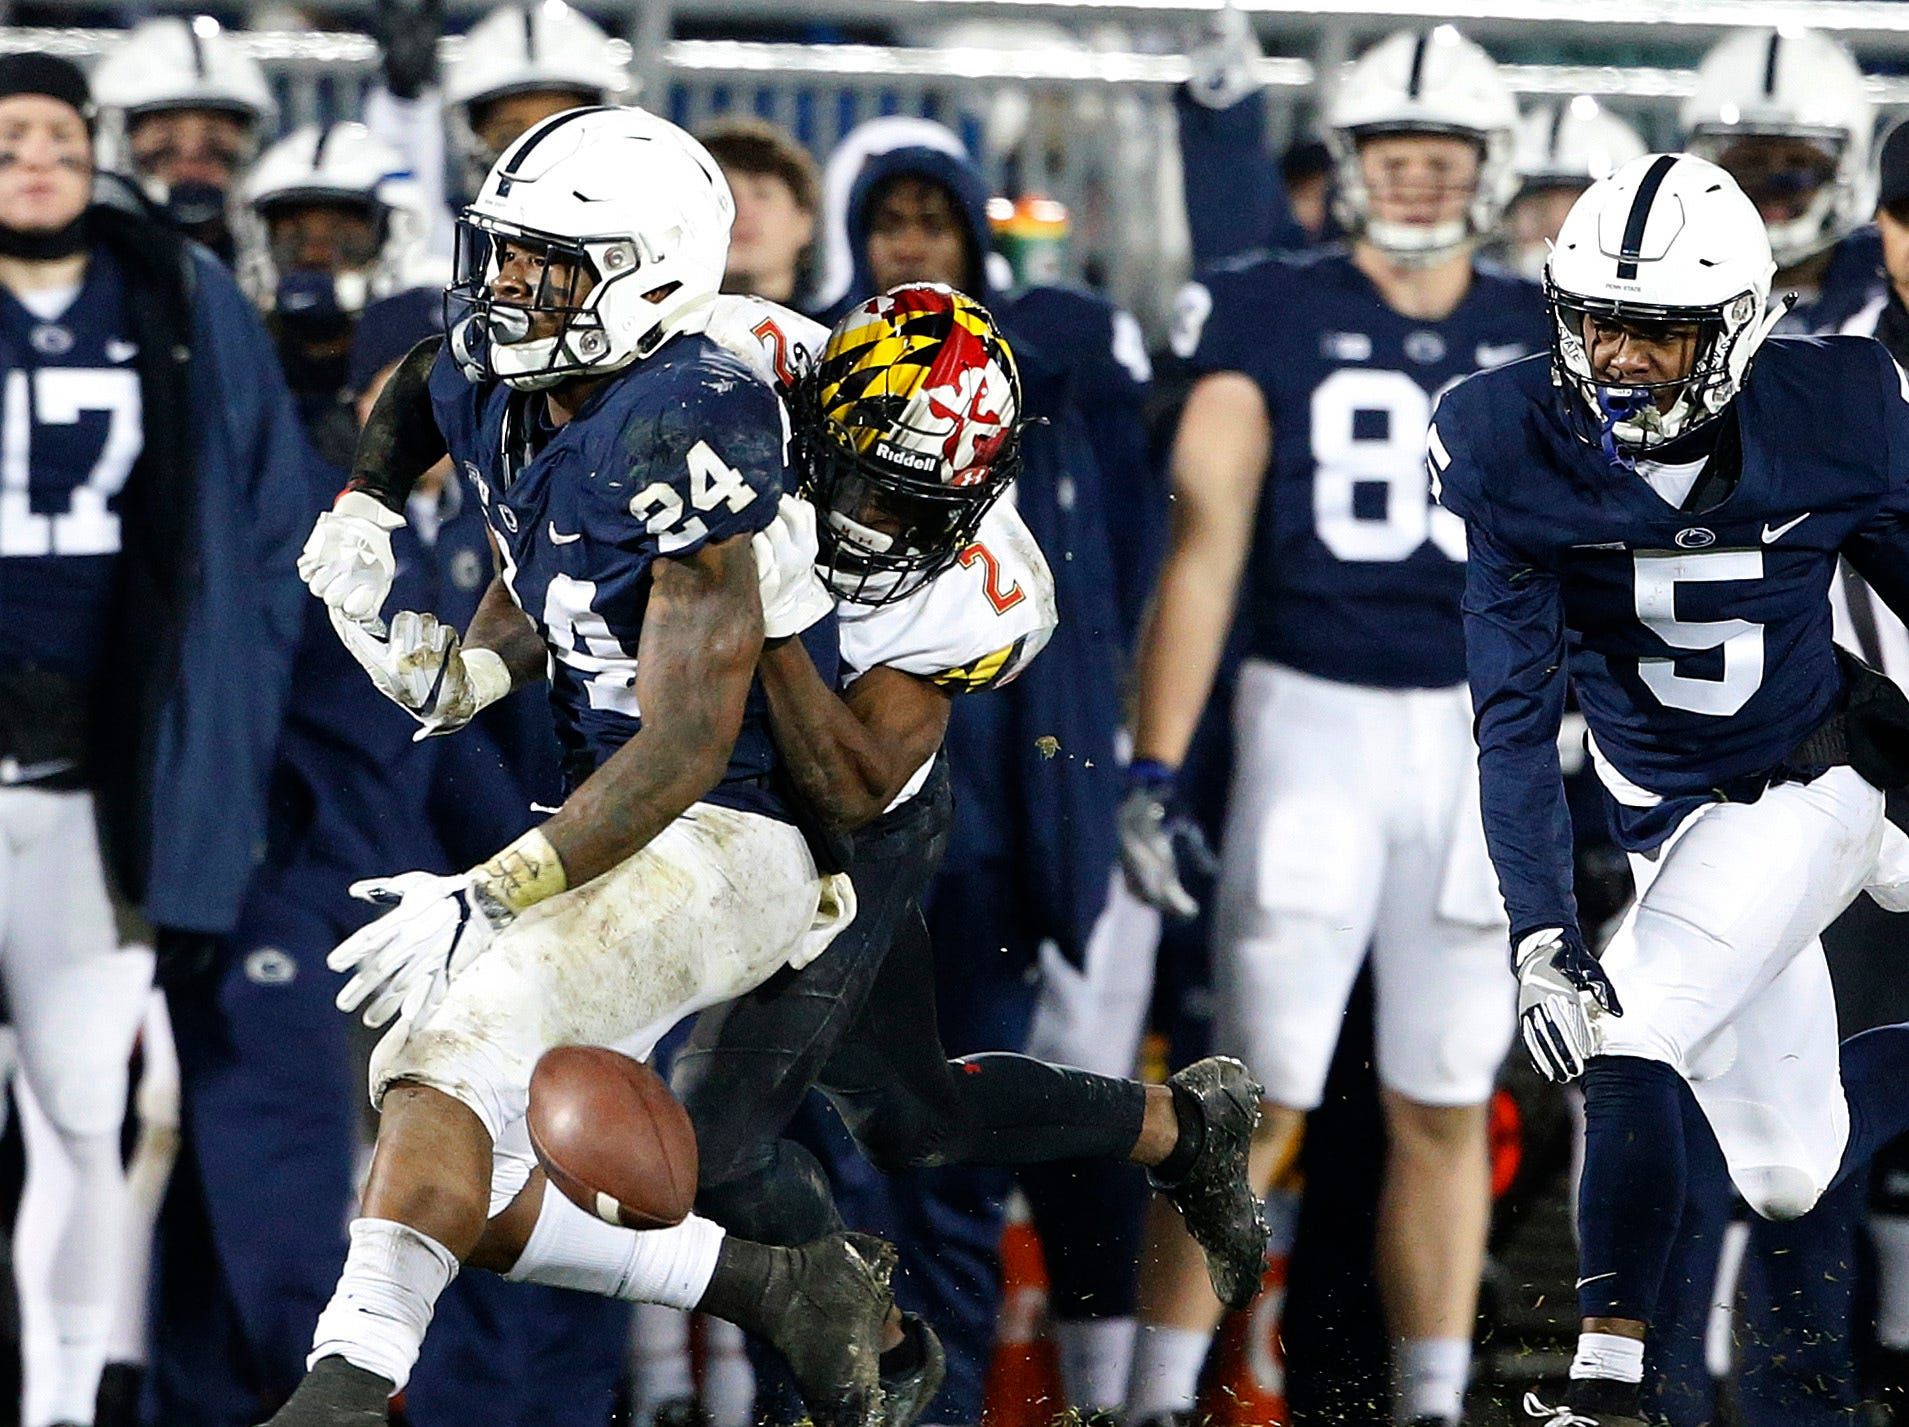 Maryland's RaVon Davis (2) strips the ball from Penn State's Miles Sanders (24) during the second half of an NCAA college football game in State College, Pa., Saturday, Nov. 24, 2018. Penn State won 38-3.